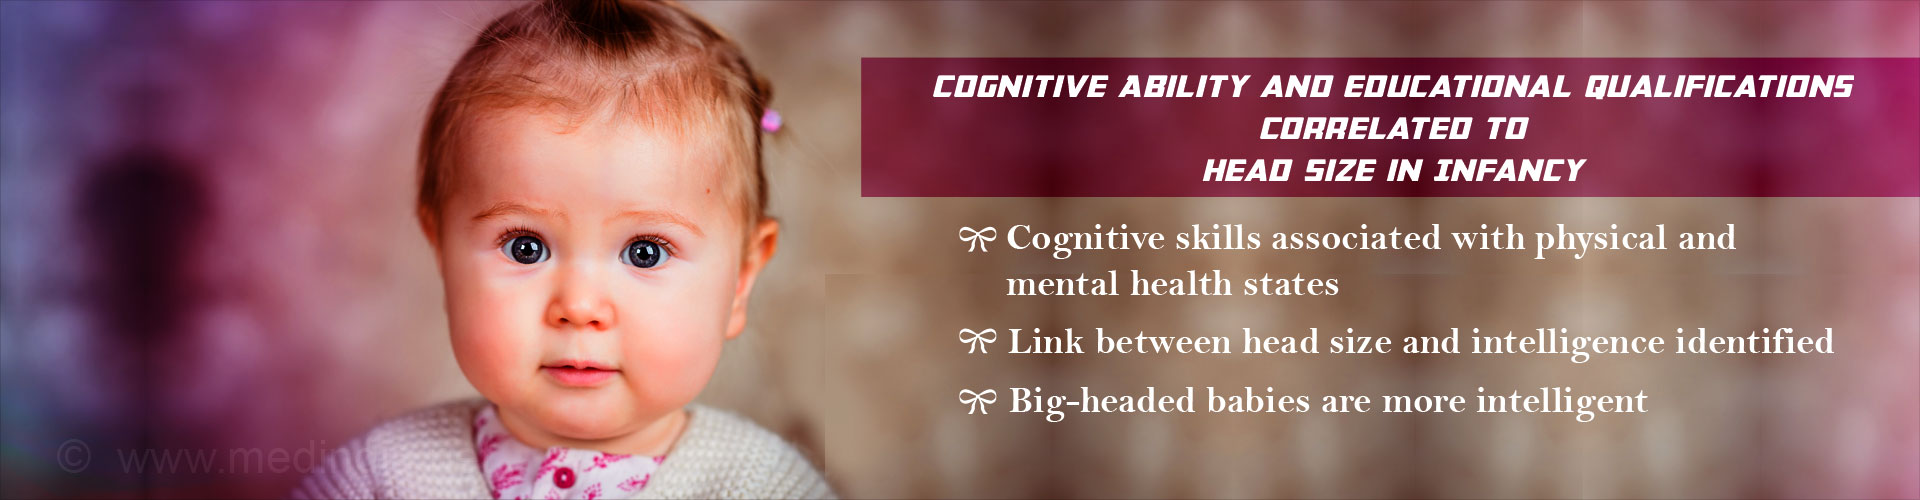 Baby's Head Size can be Correlated With Cognitive Ability